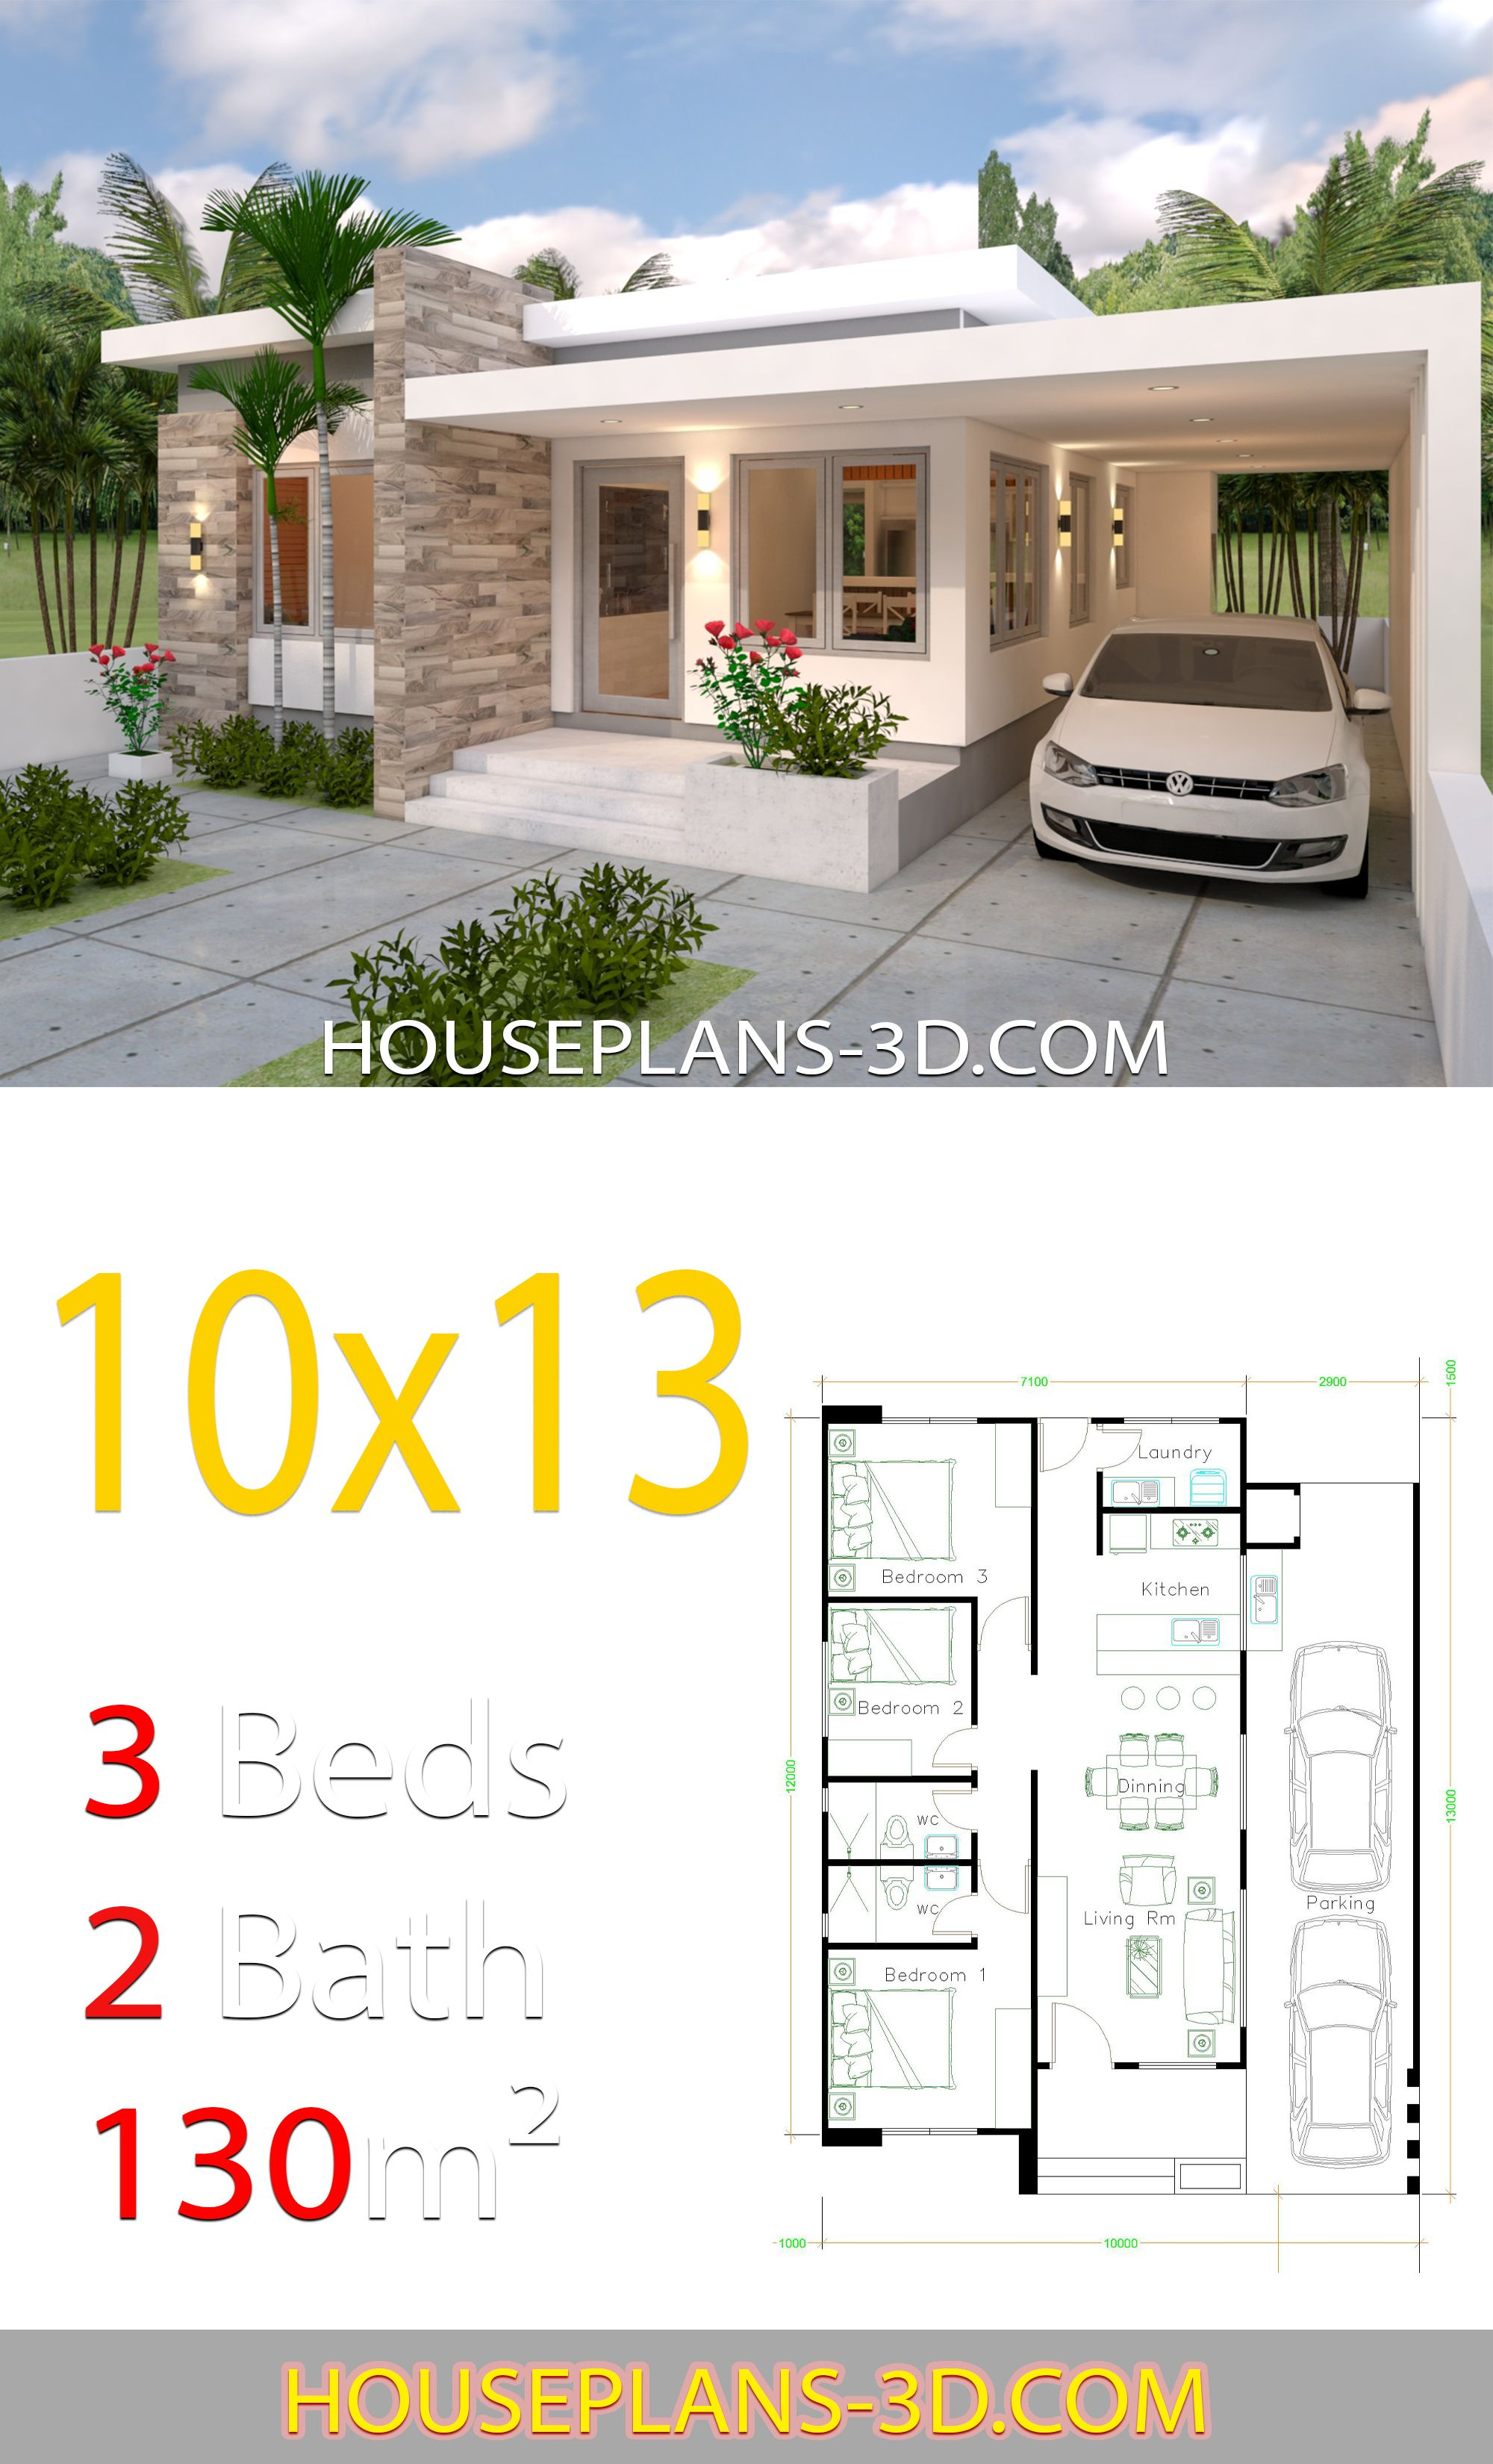 House Design 10x13 With 3 Bedrooms Full Plans Con Immagini